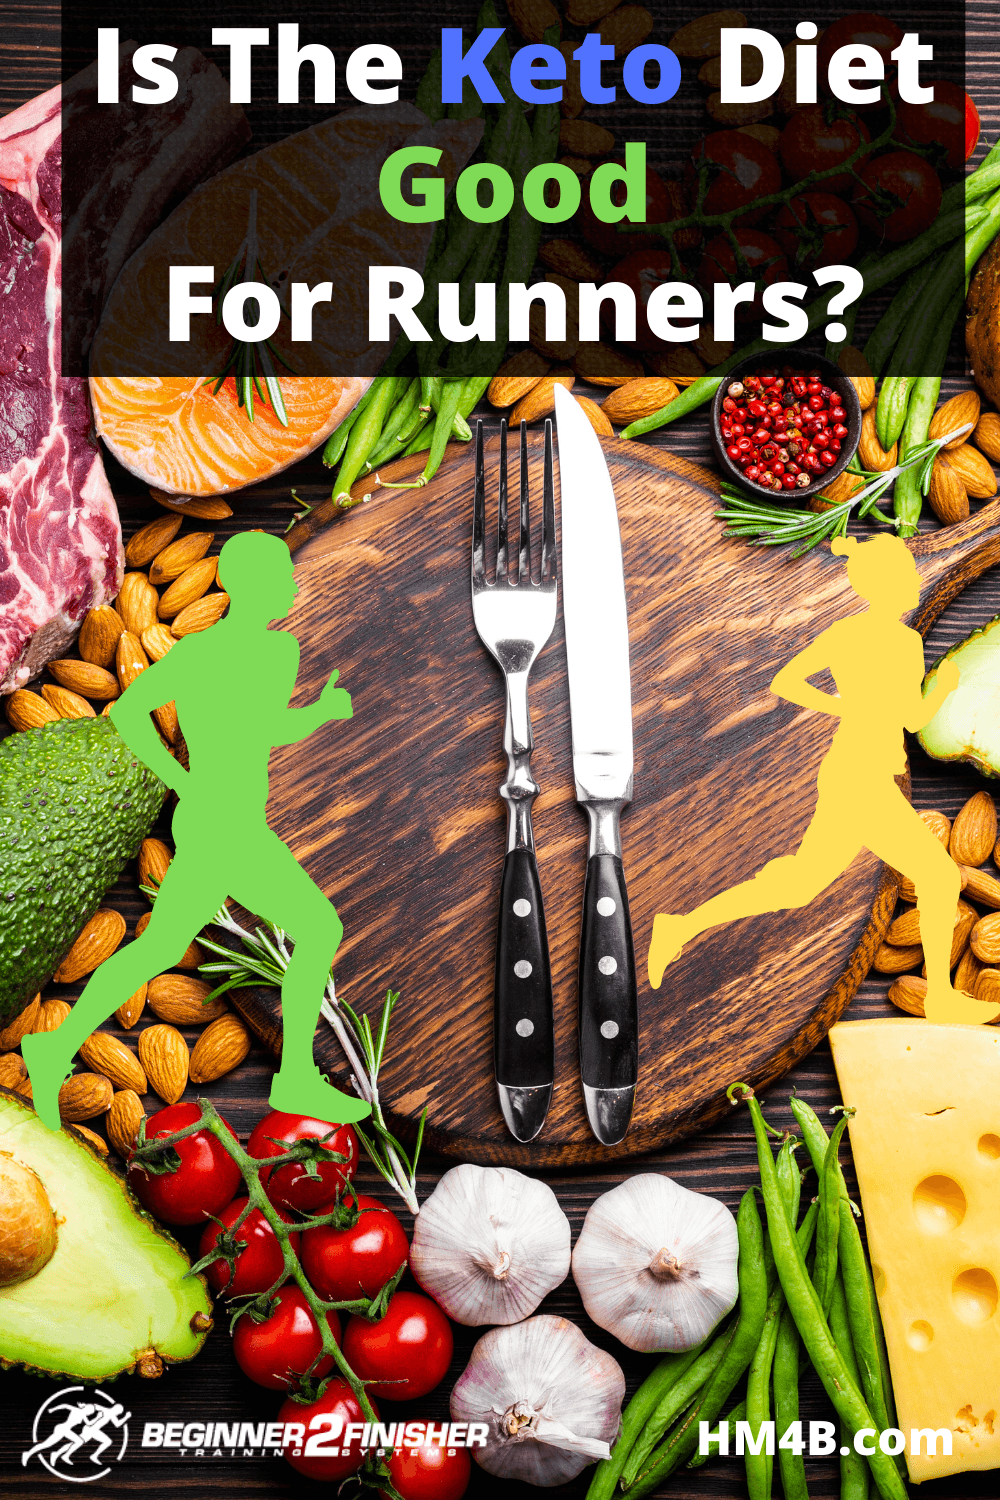 Is the Keto Diet Good for Runners?